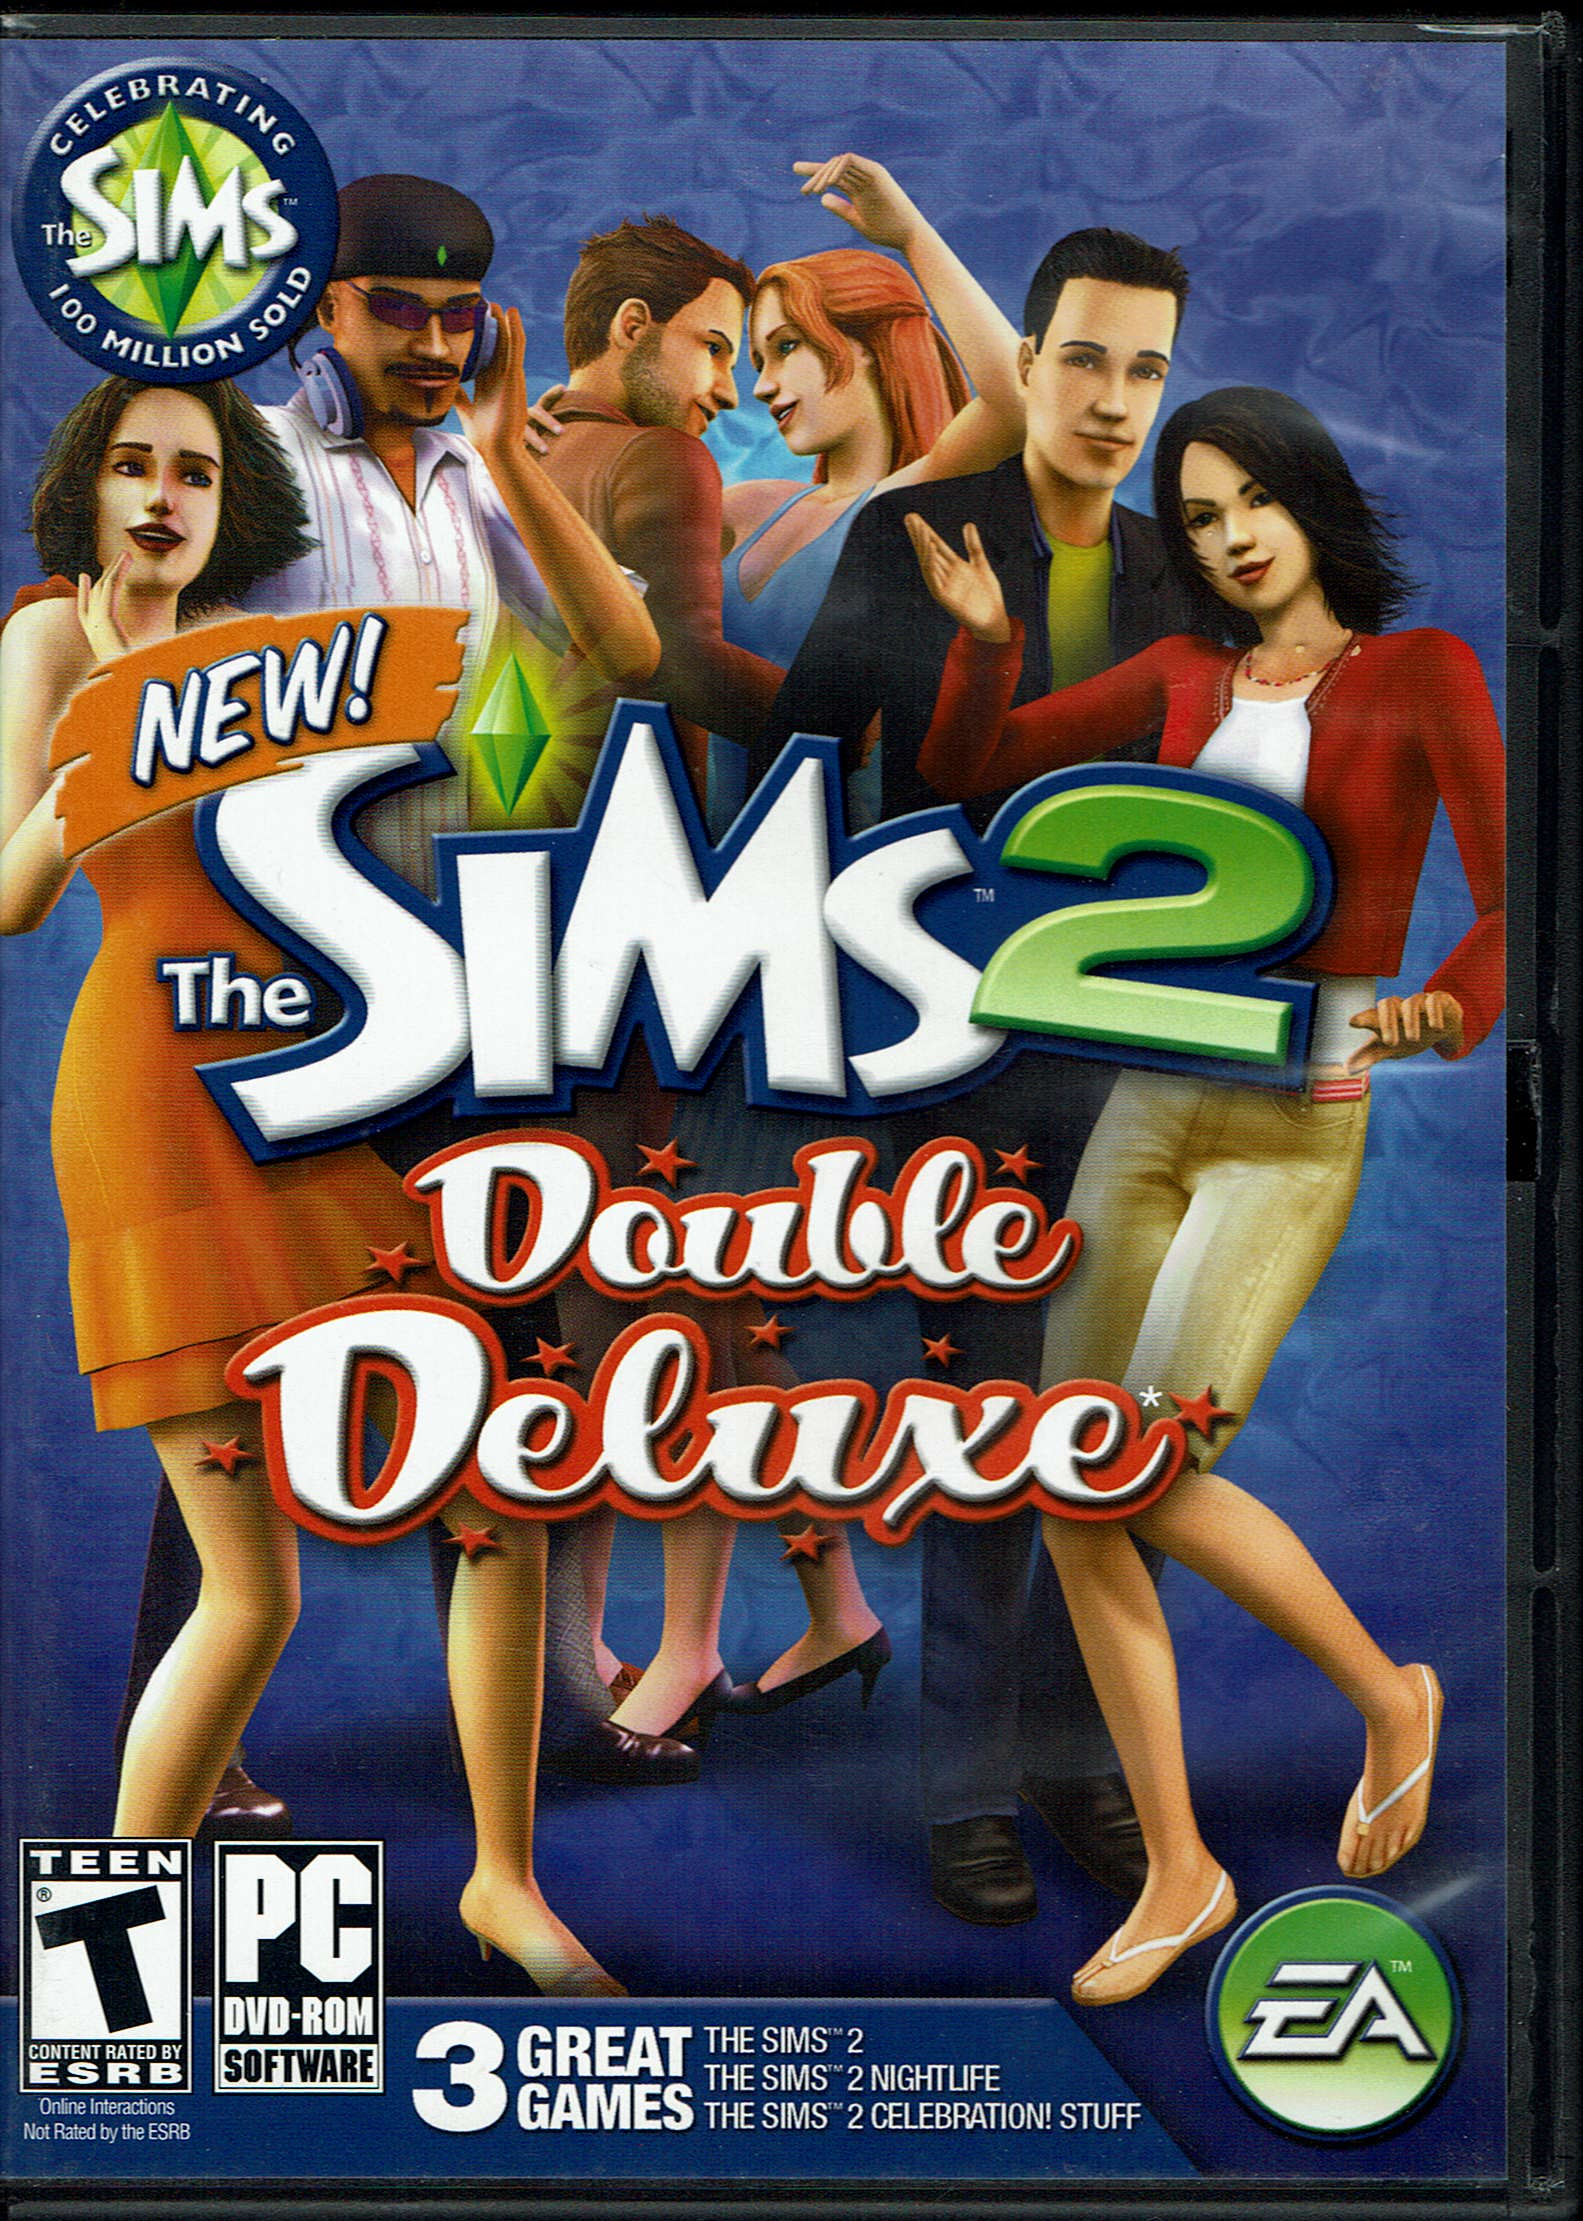 The sims 2 nightlife crack exercises